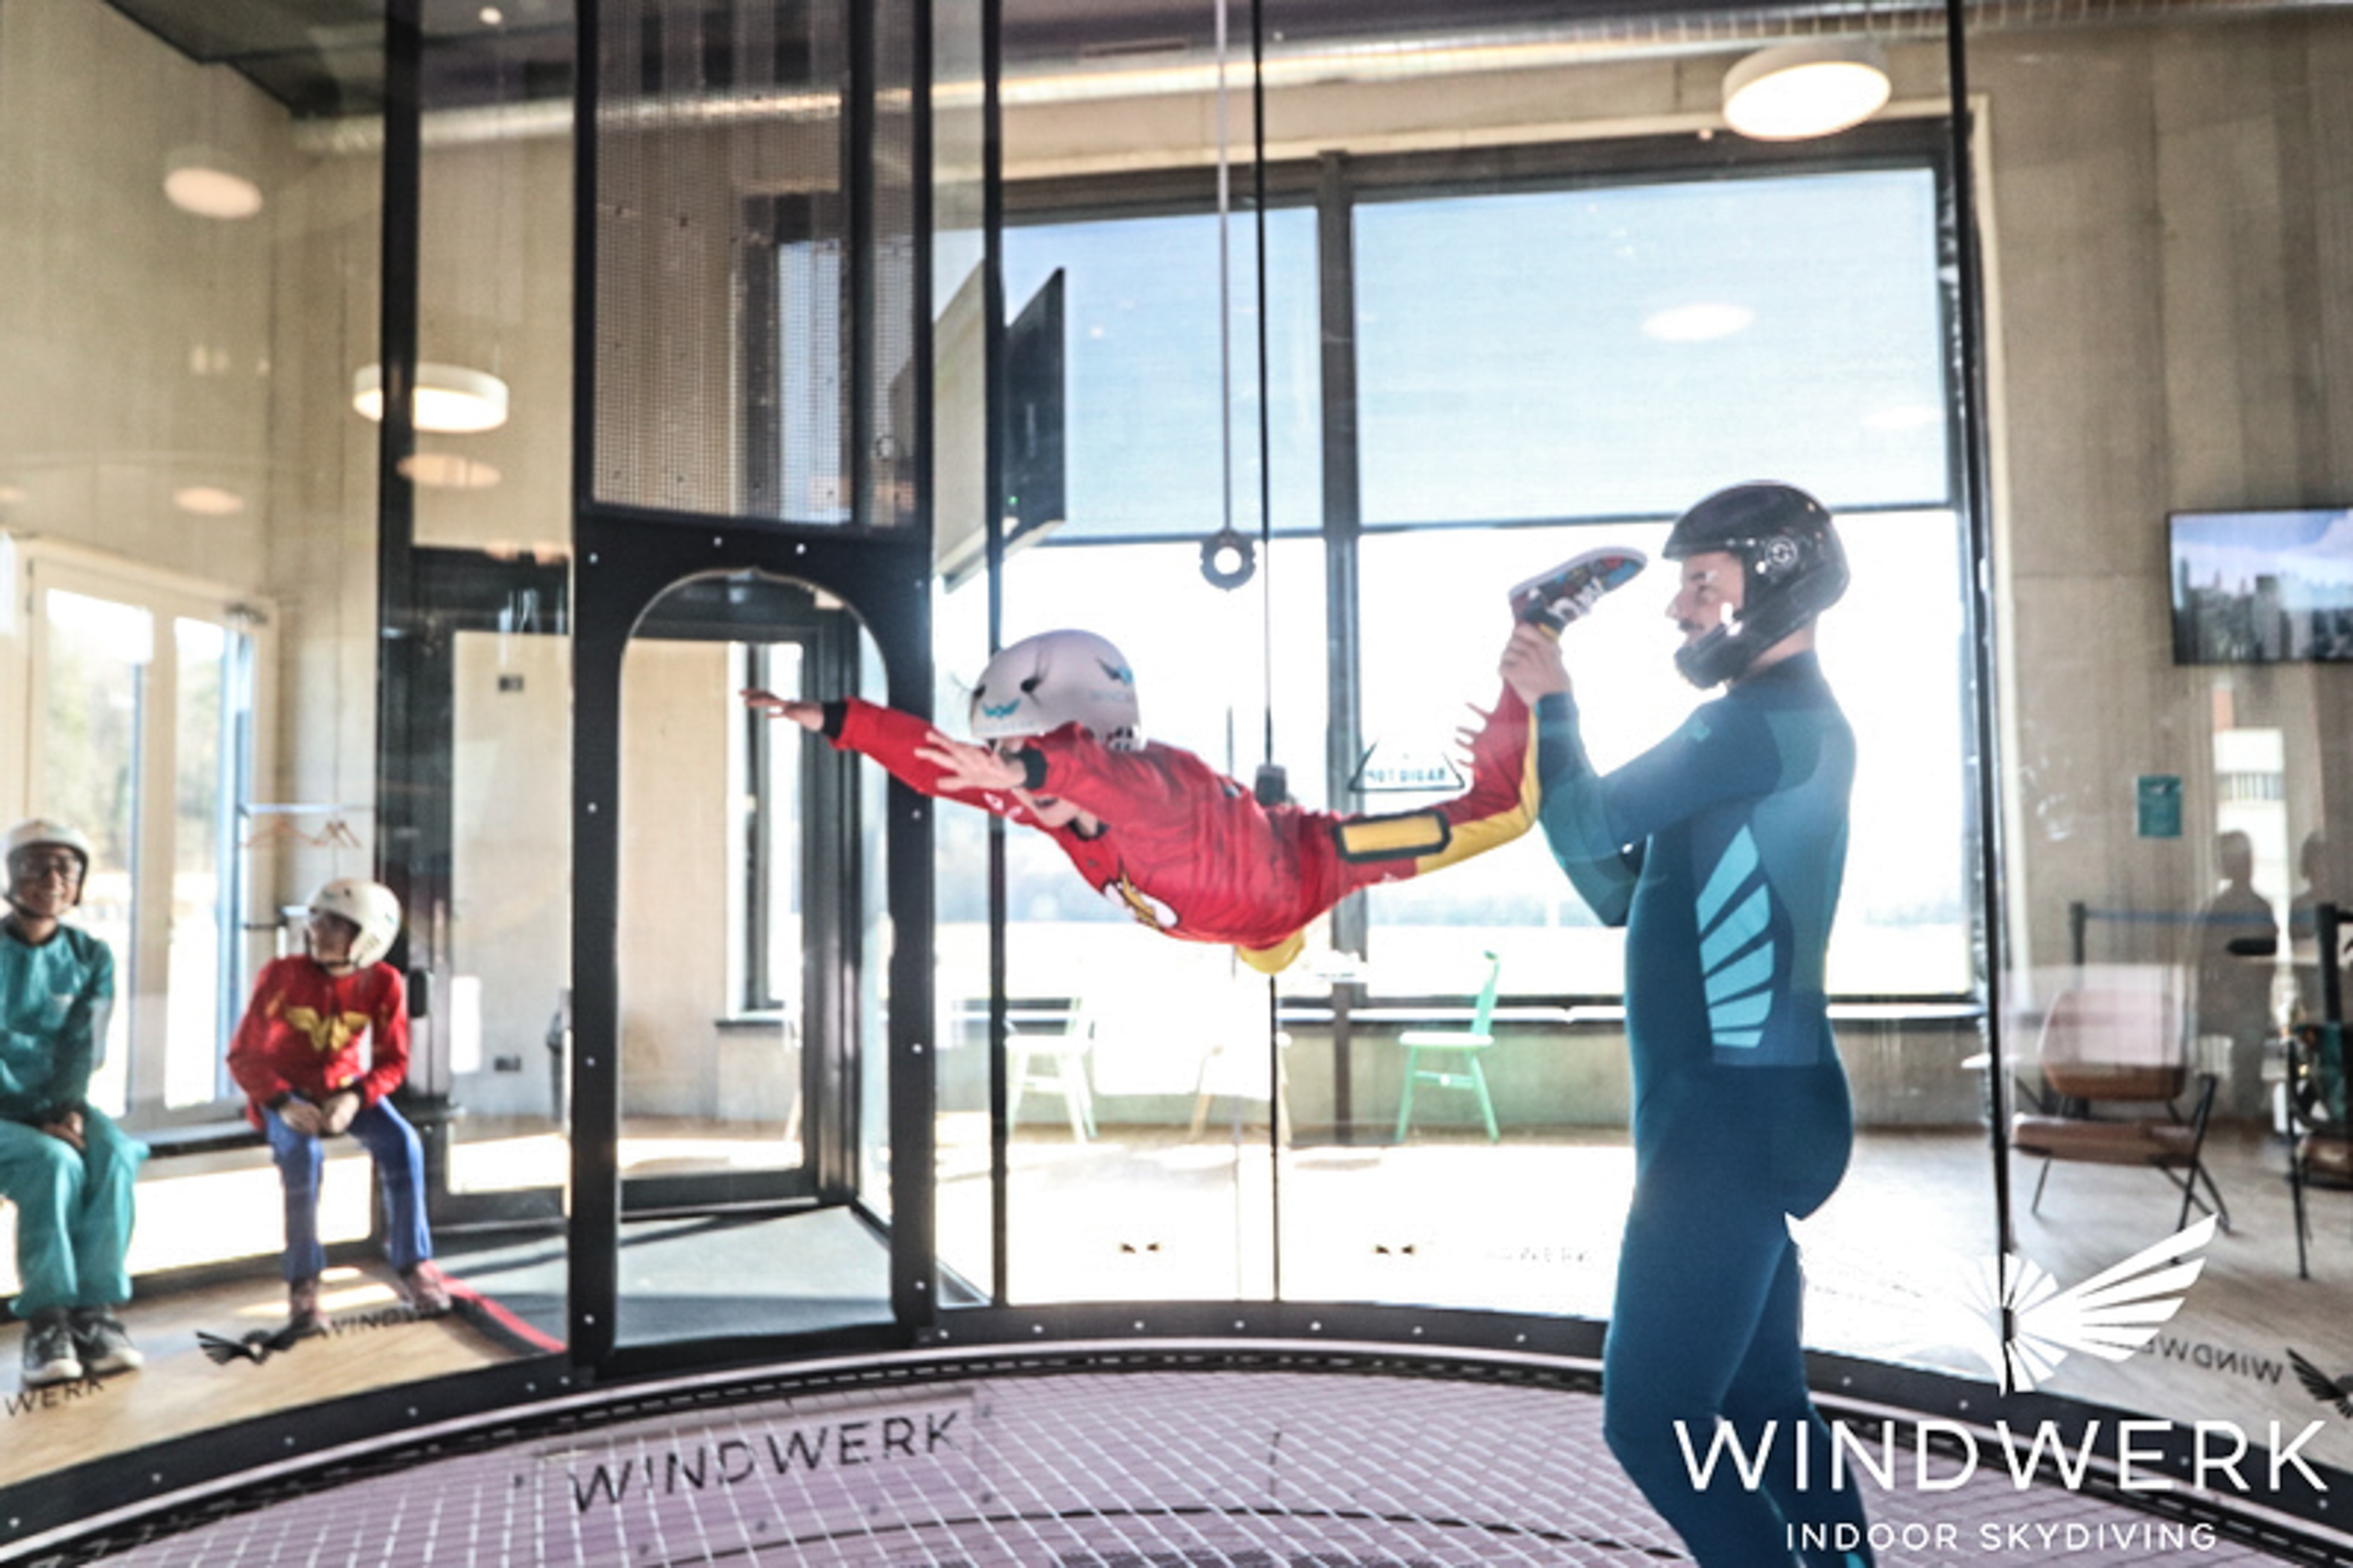 Windwerk Winterthur Bodyflying